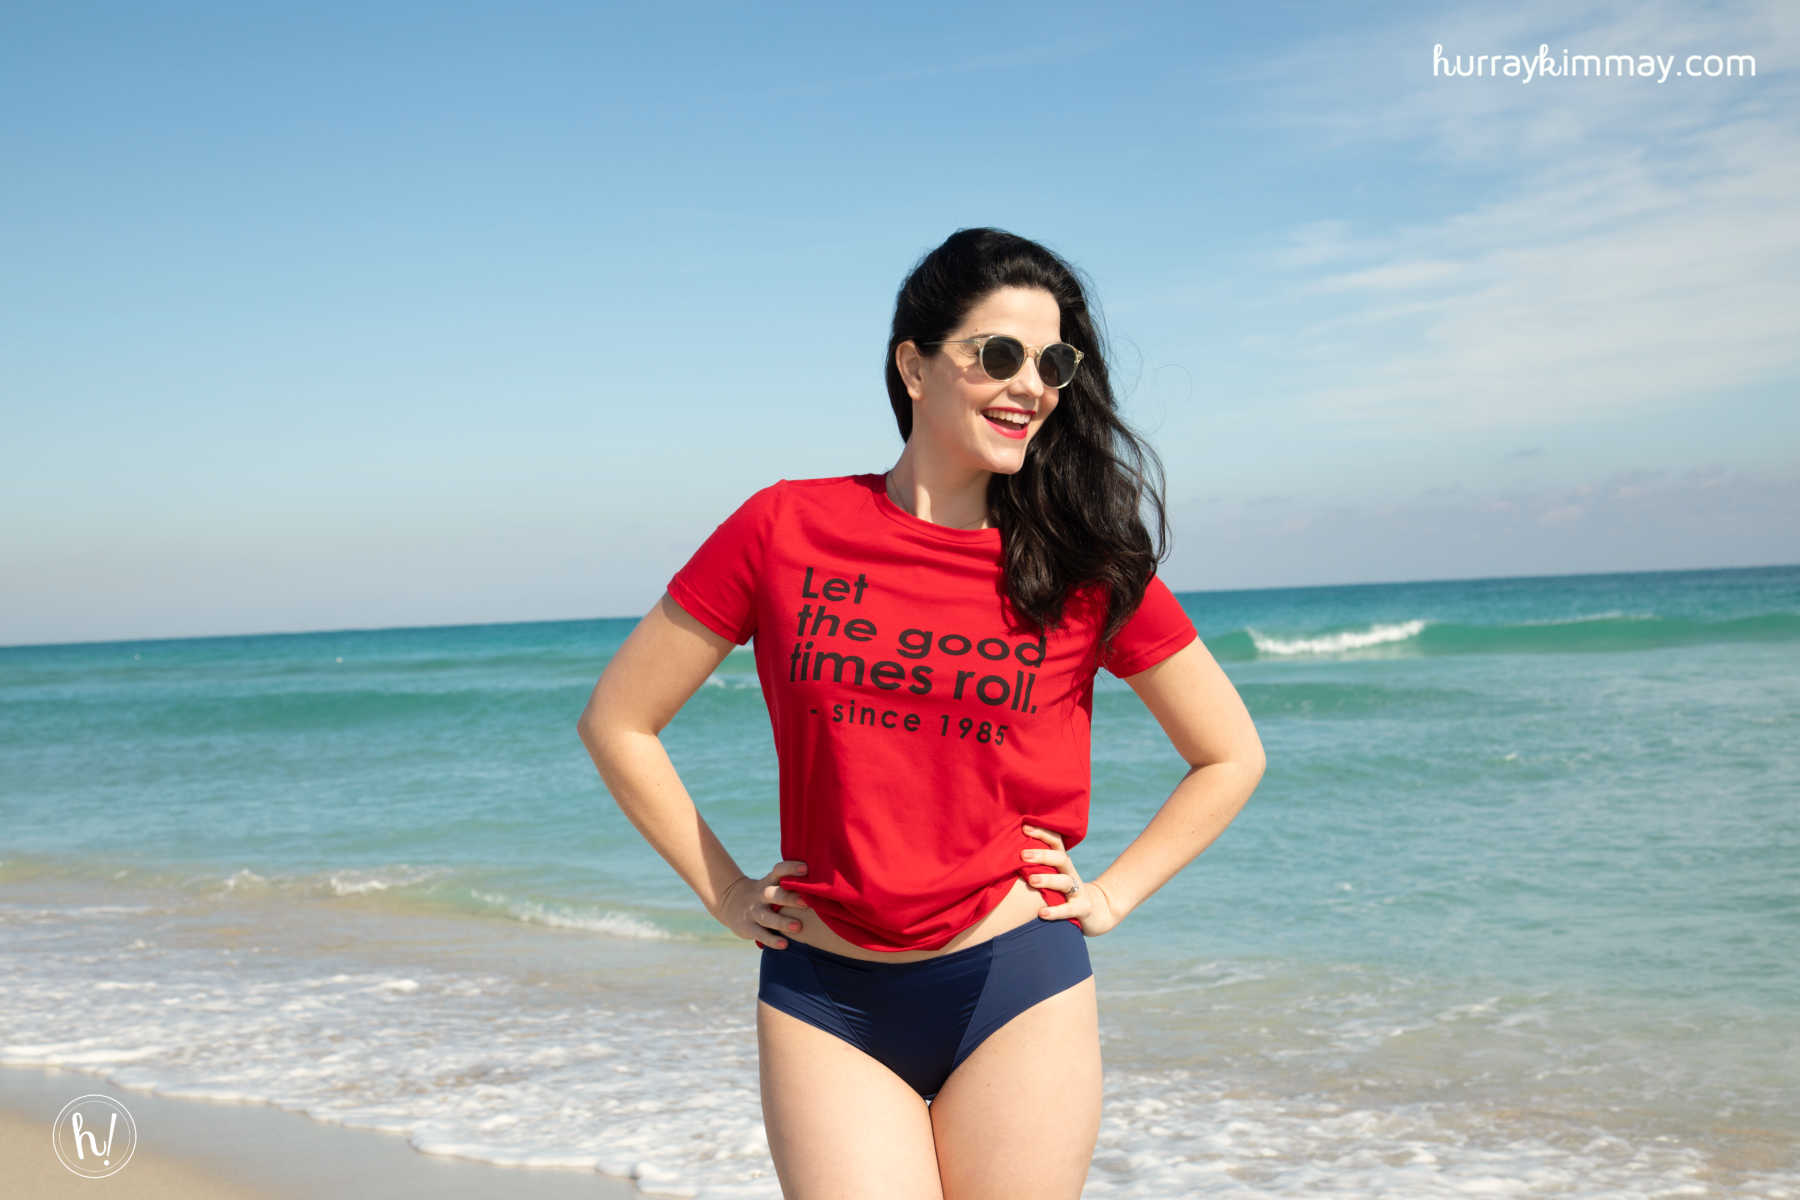 Kimmay wearing the Mystique Underwire Bra from Dominique during the #HurrayVacay in Miami!